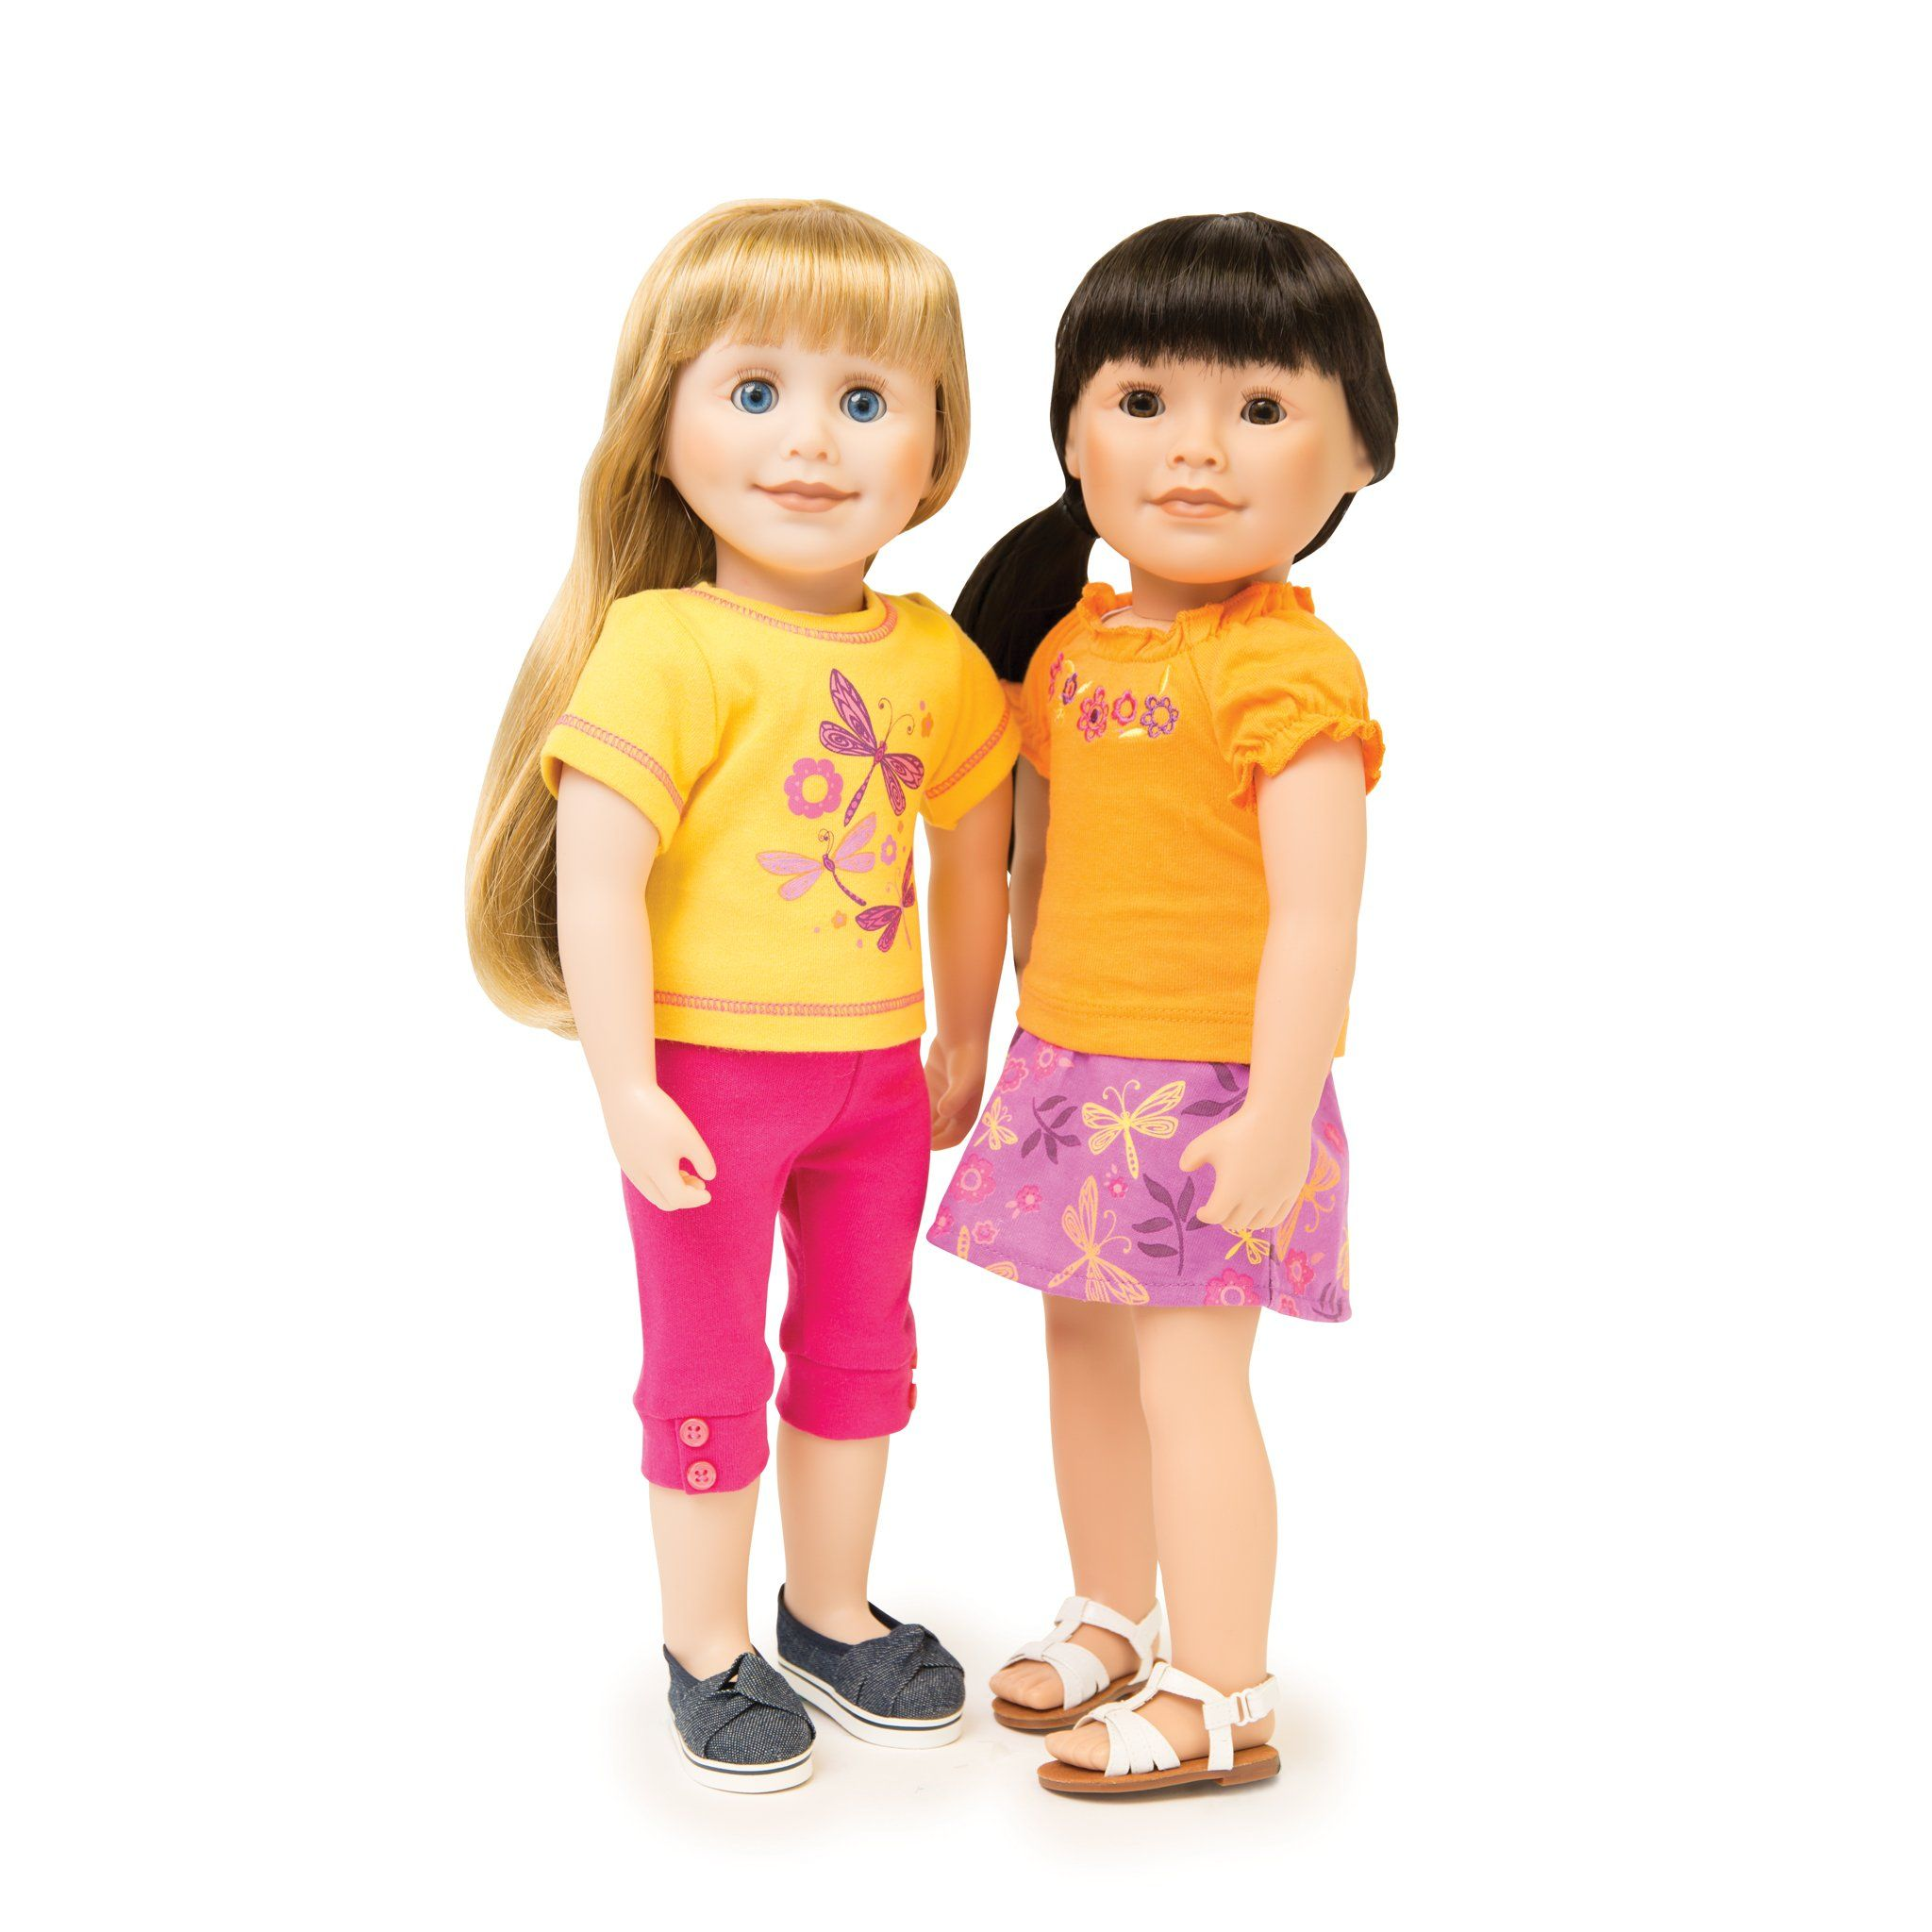 3185bac1e2e1 Pelee Pizzazz KM71 | All Dolls | Spring Outfits | Casual Outfits | Outftits  and Accessories